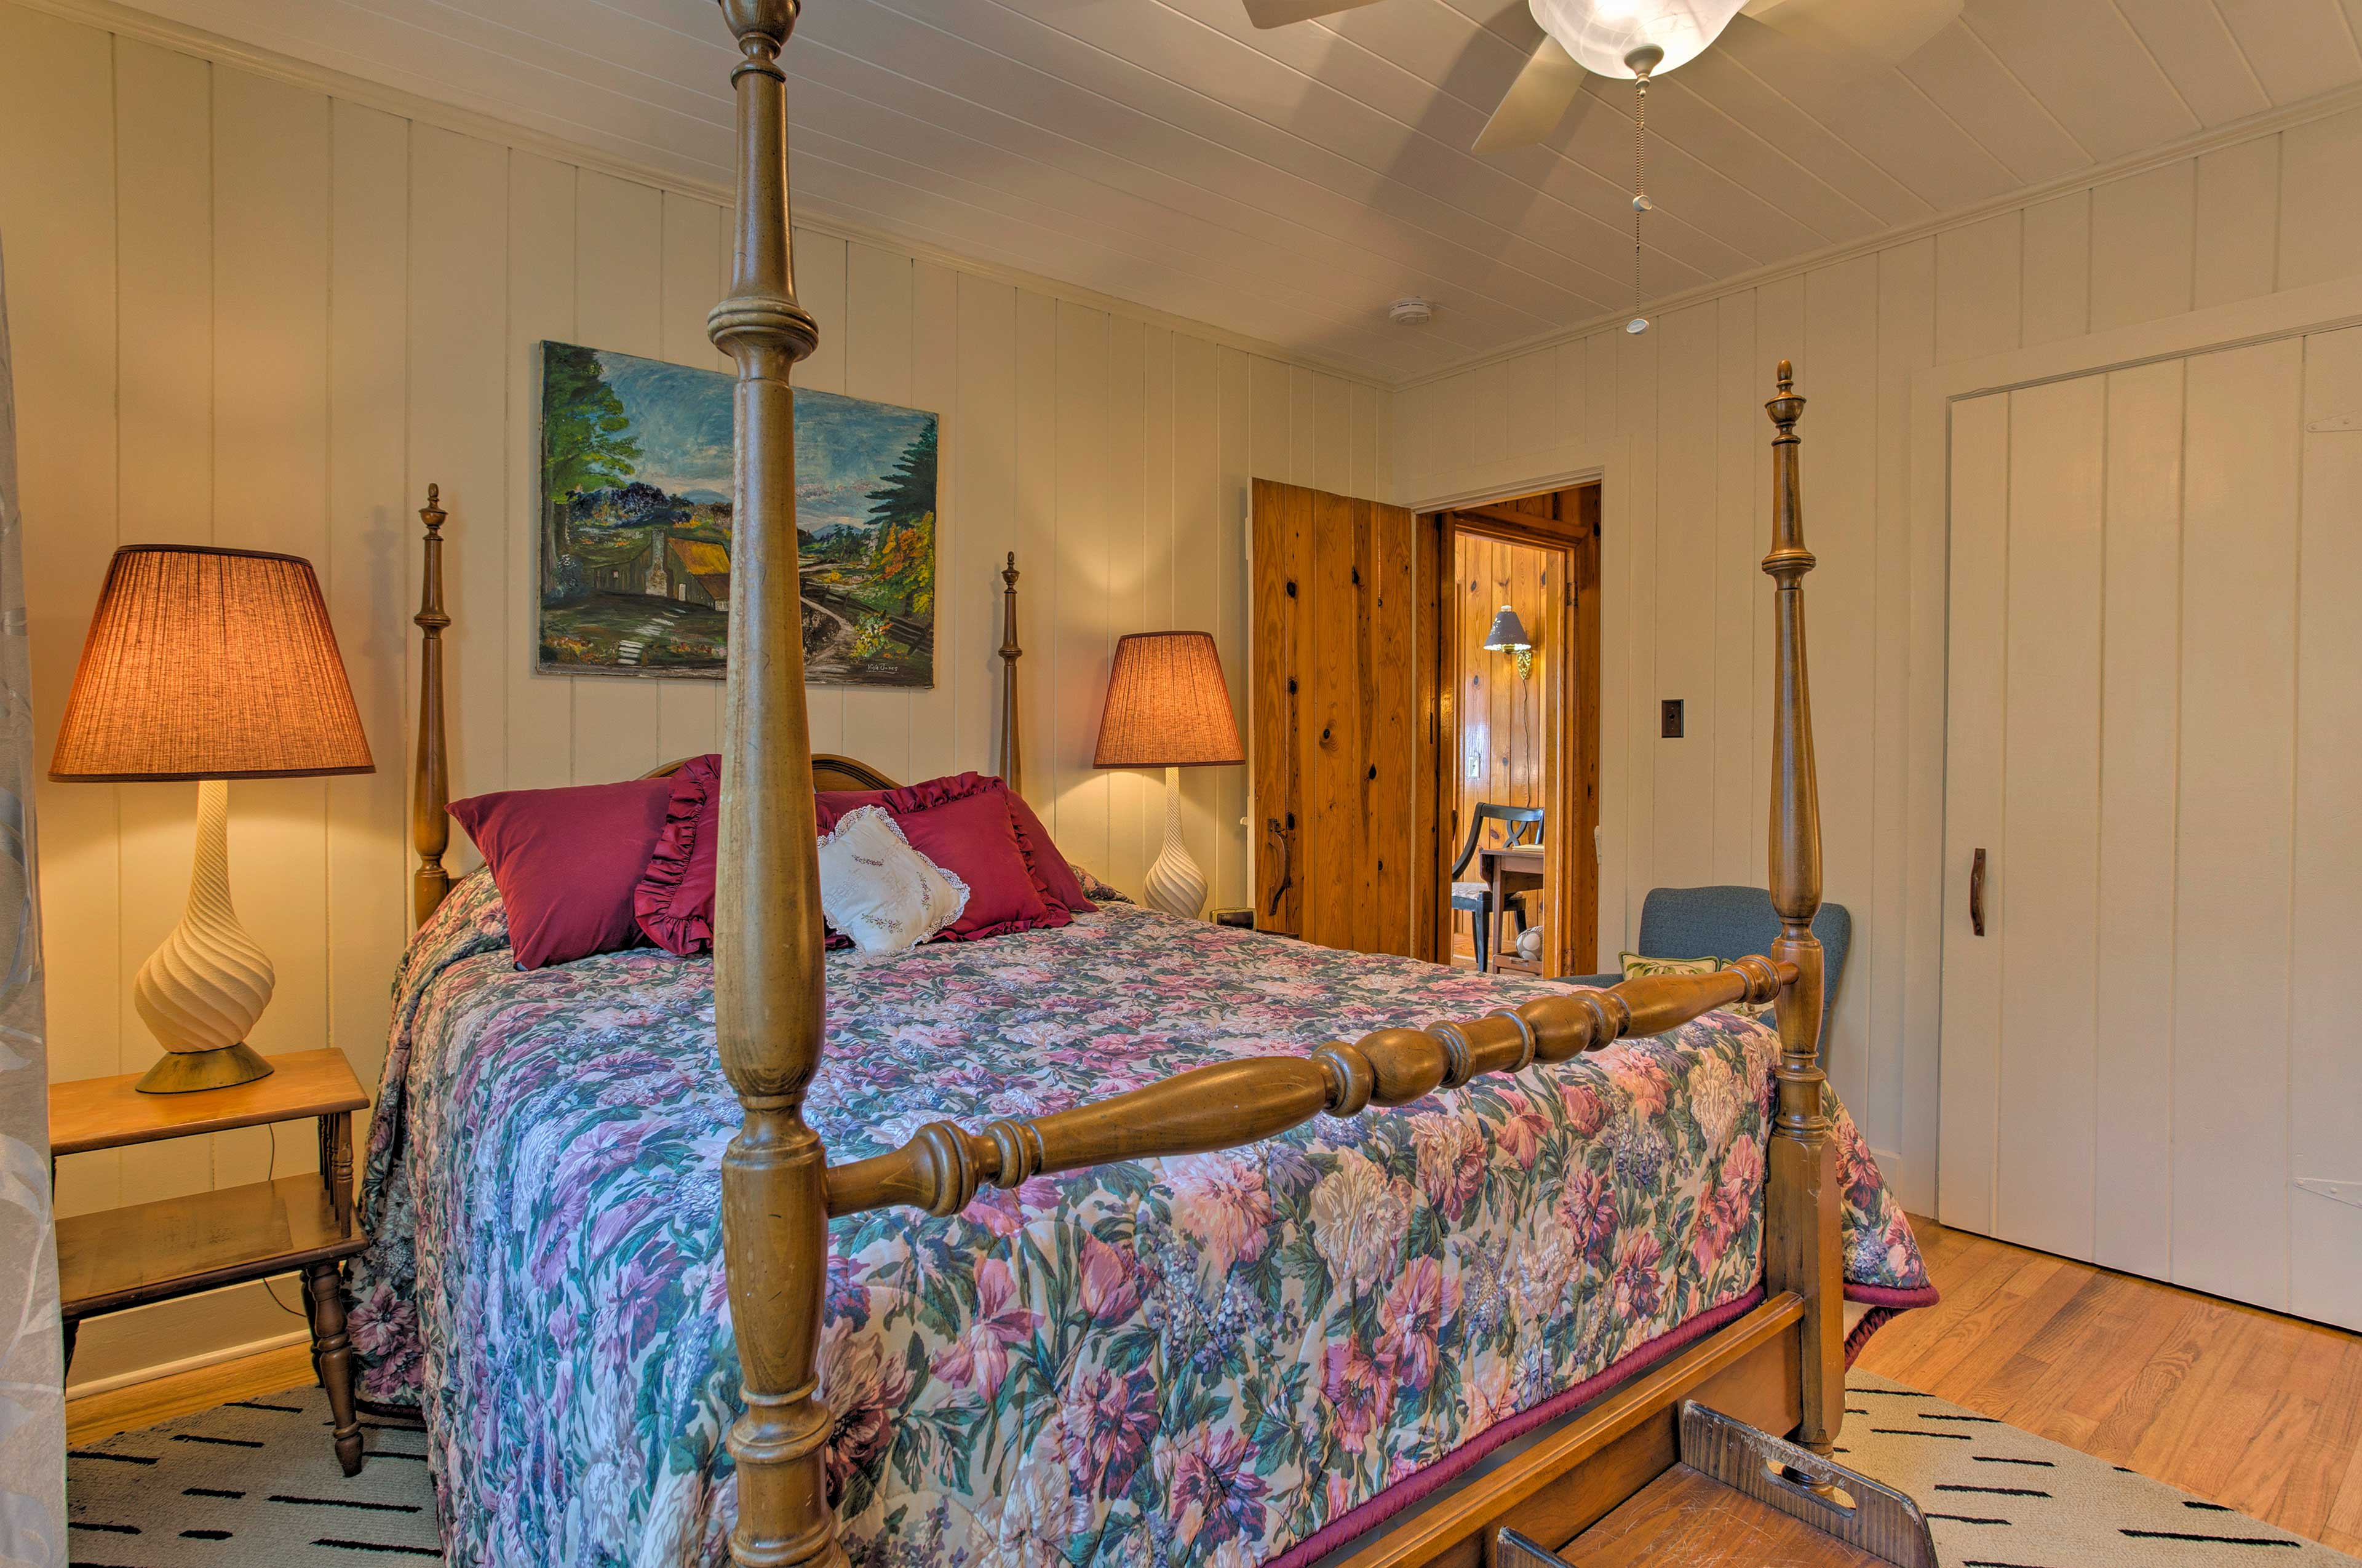 Rest easy on the king bed in the master bedroom.